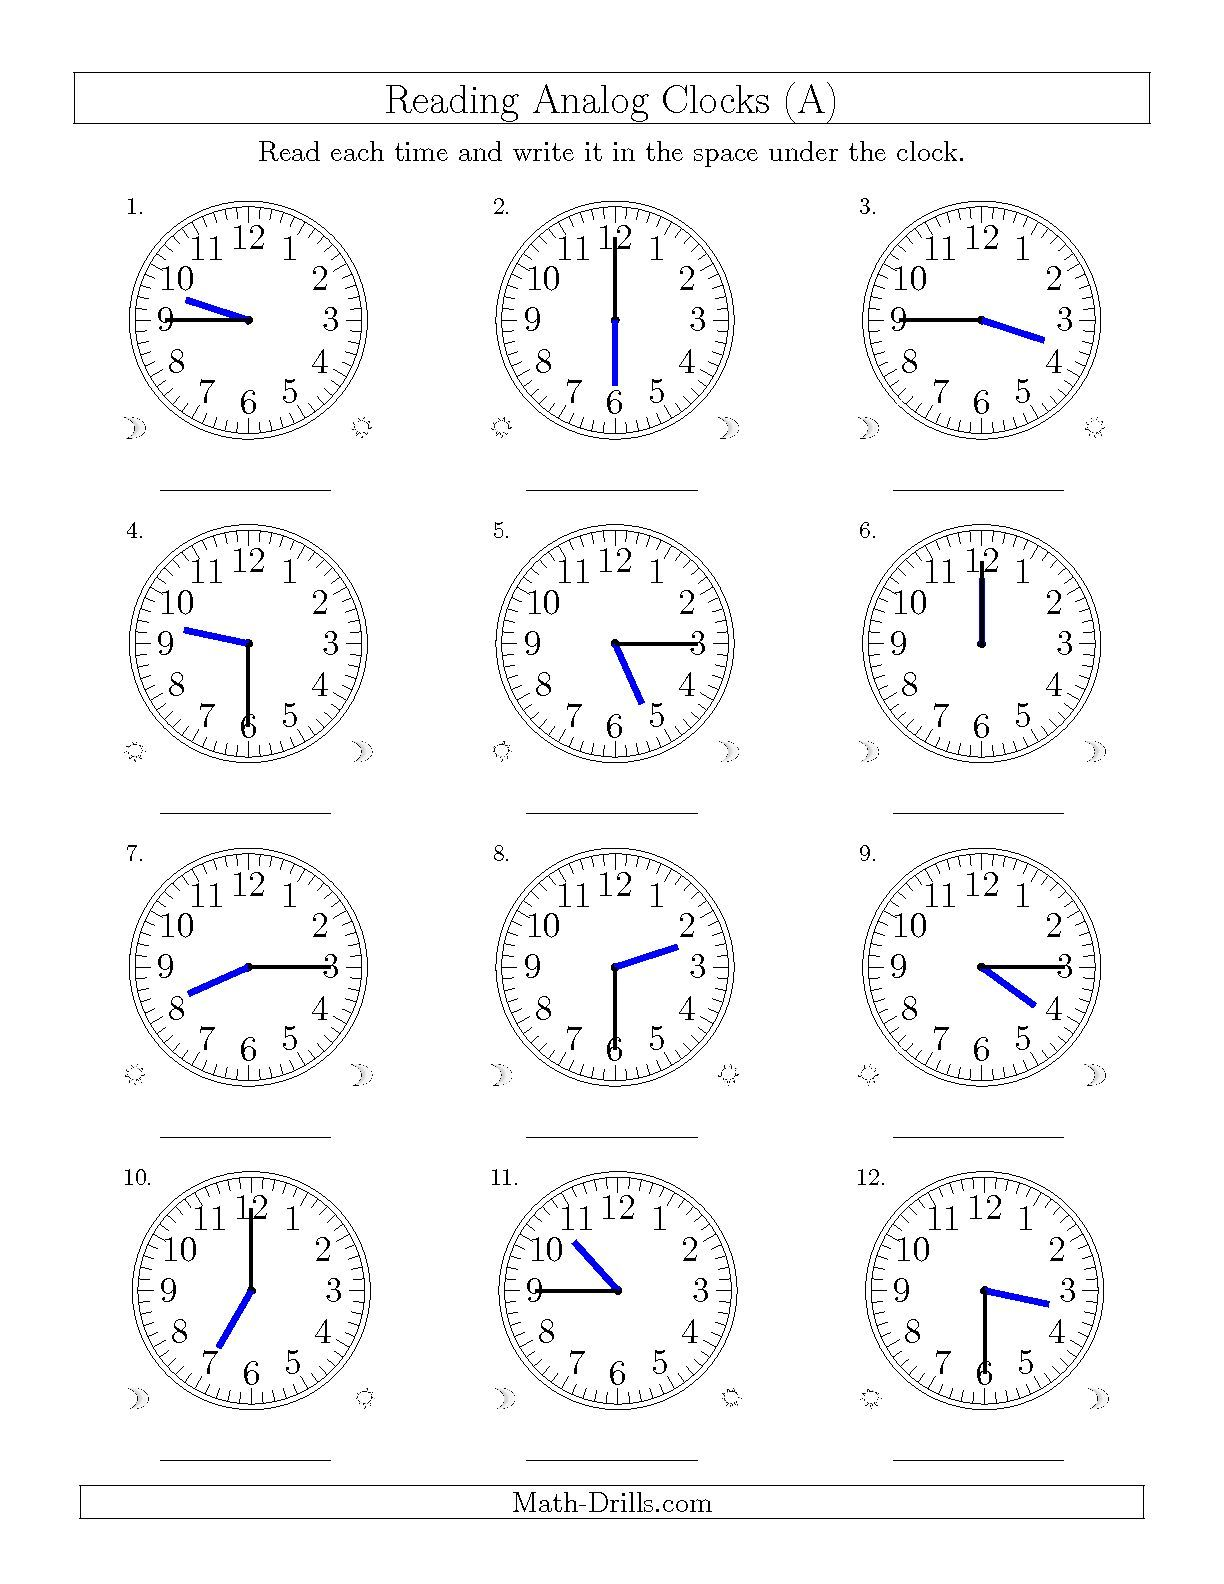 The Reading Time On 12 Hour Analog Clocks In 15 Minute Intervals